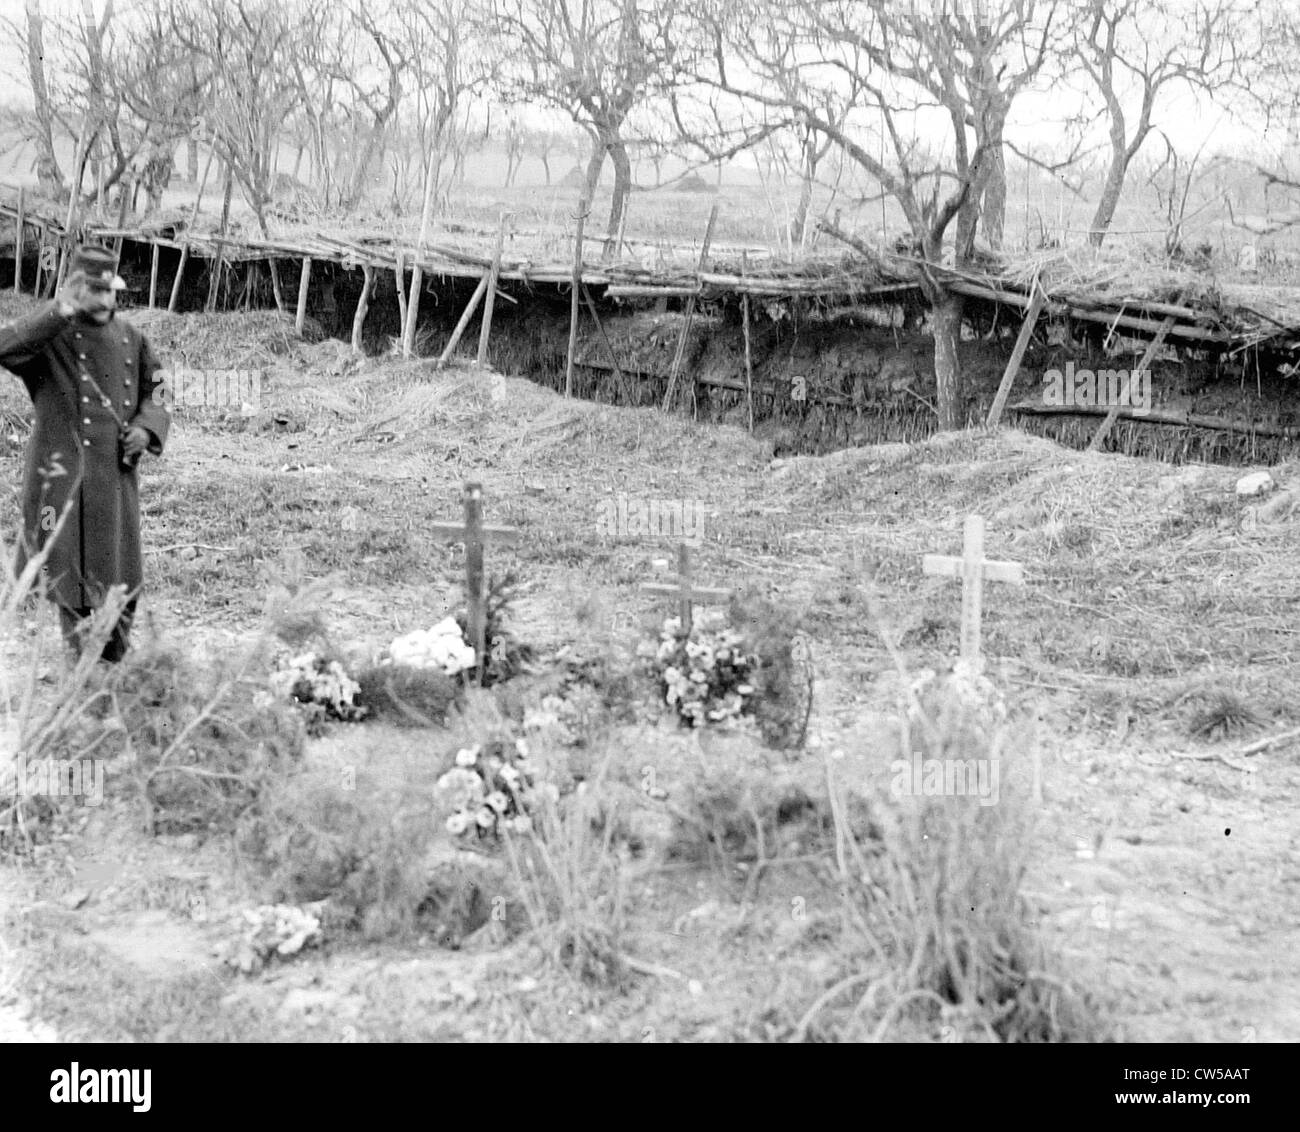 A visit to the east, saluting the dead in front of a trench - Stock Image